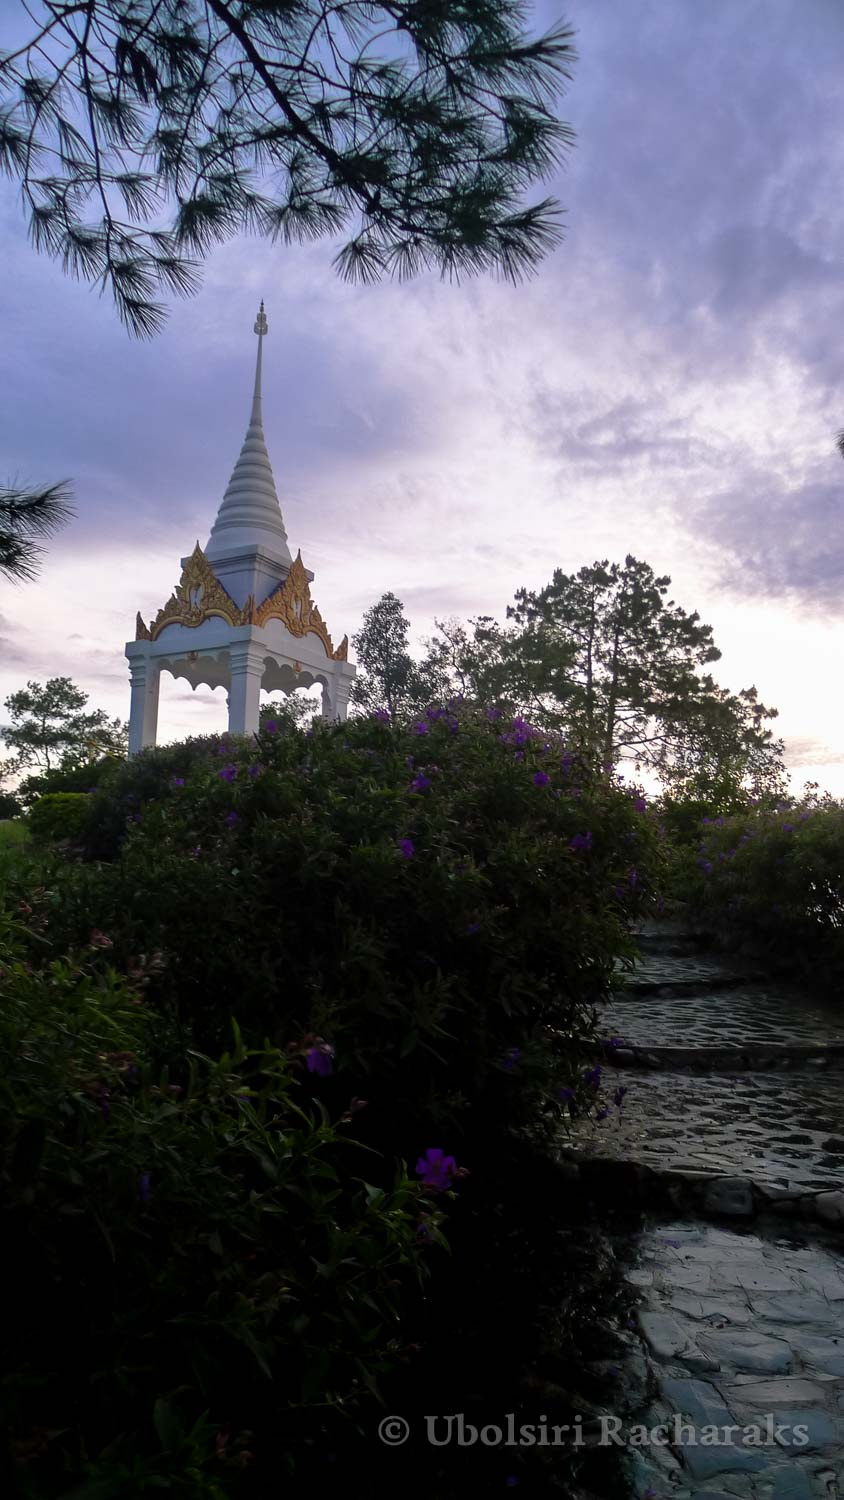 Stupa at the top of the stairs at sunrise